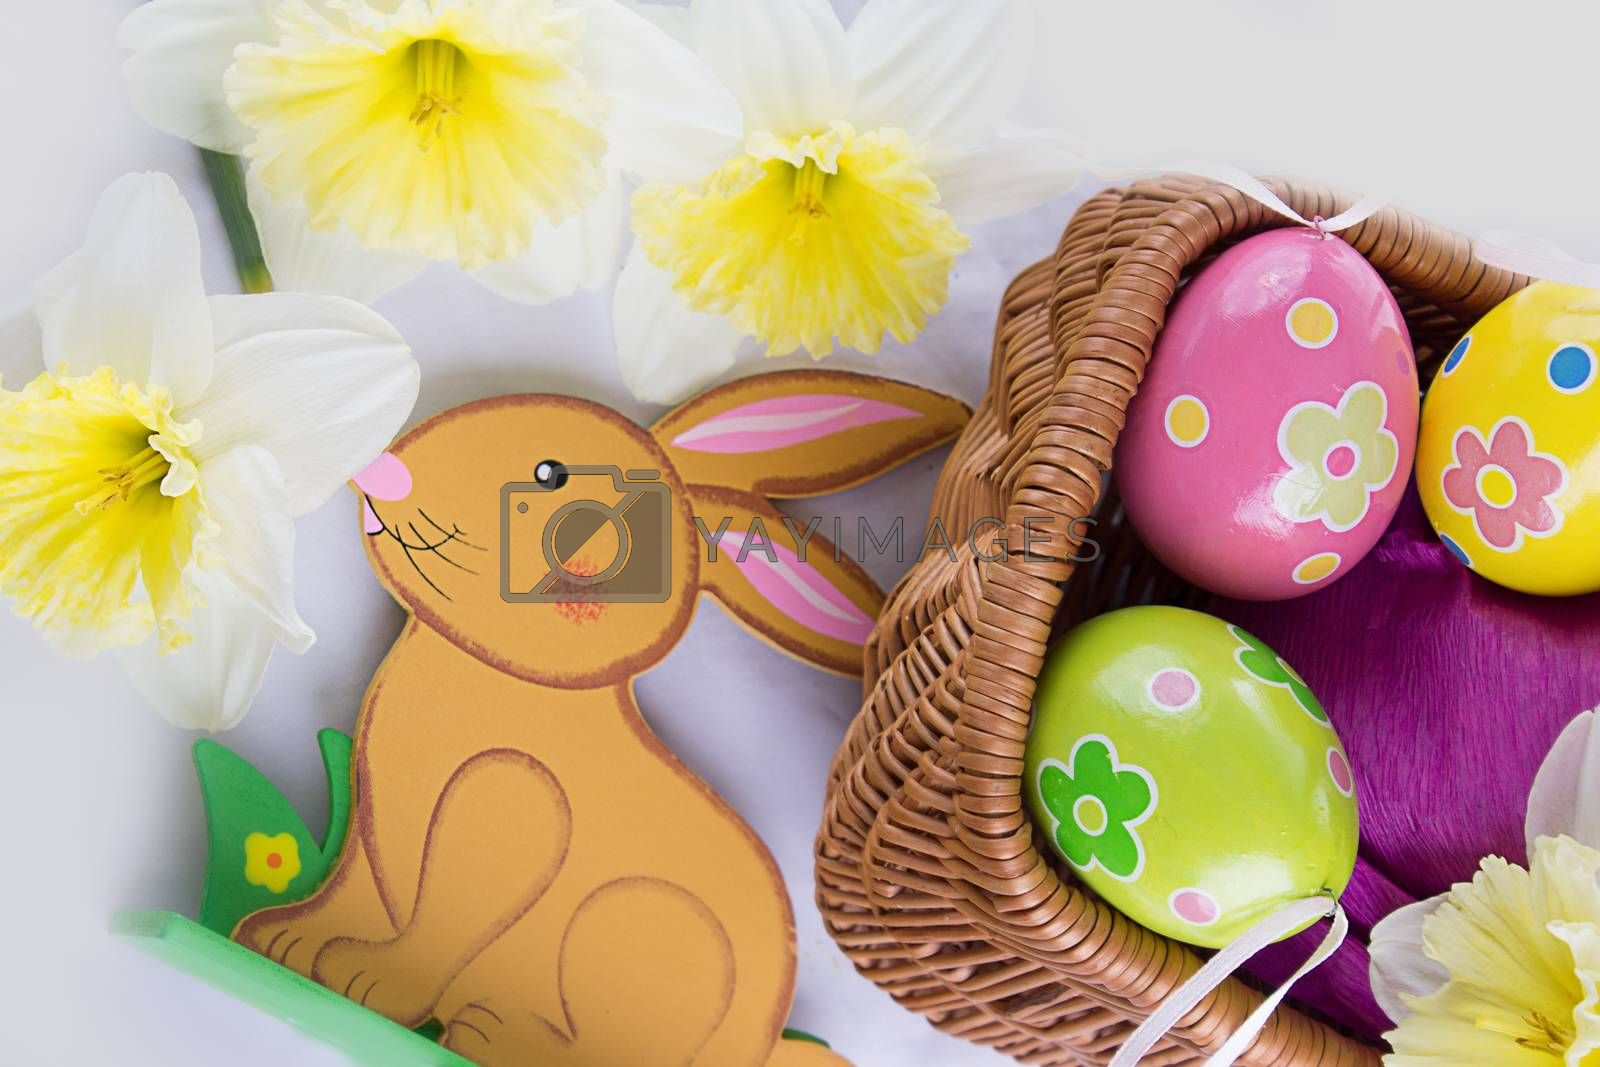 Royalty free image of Easter decor by Angel_a